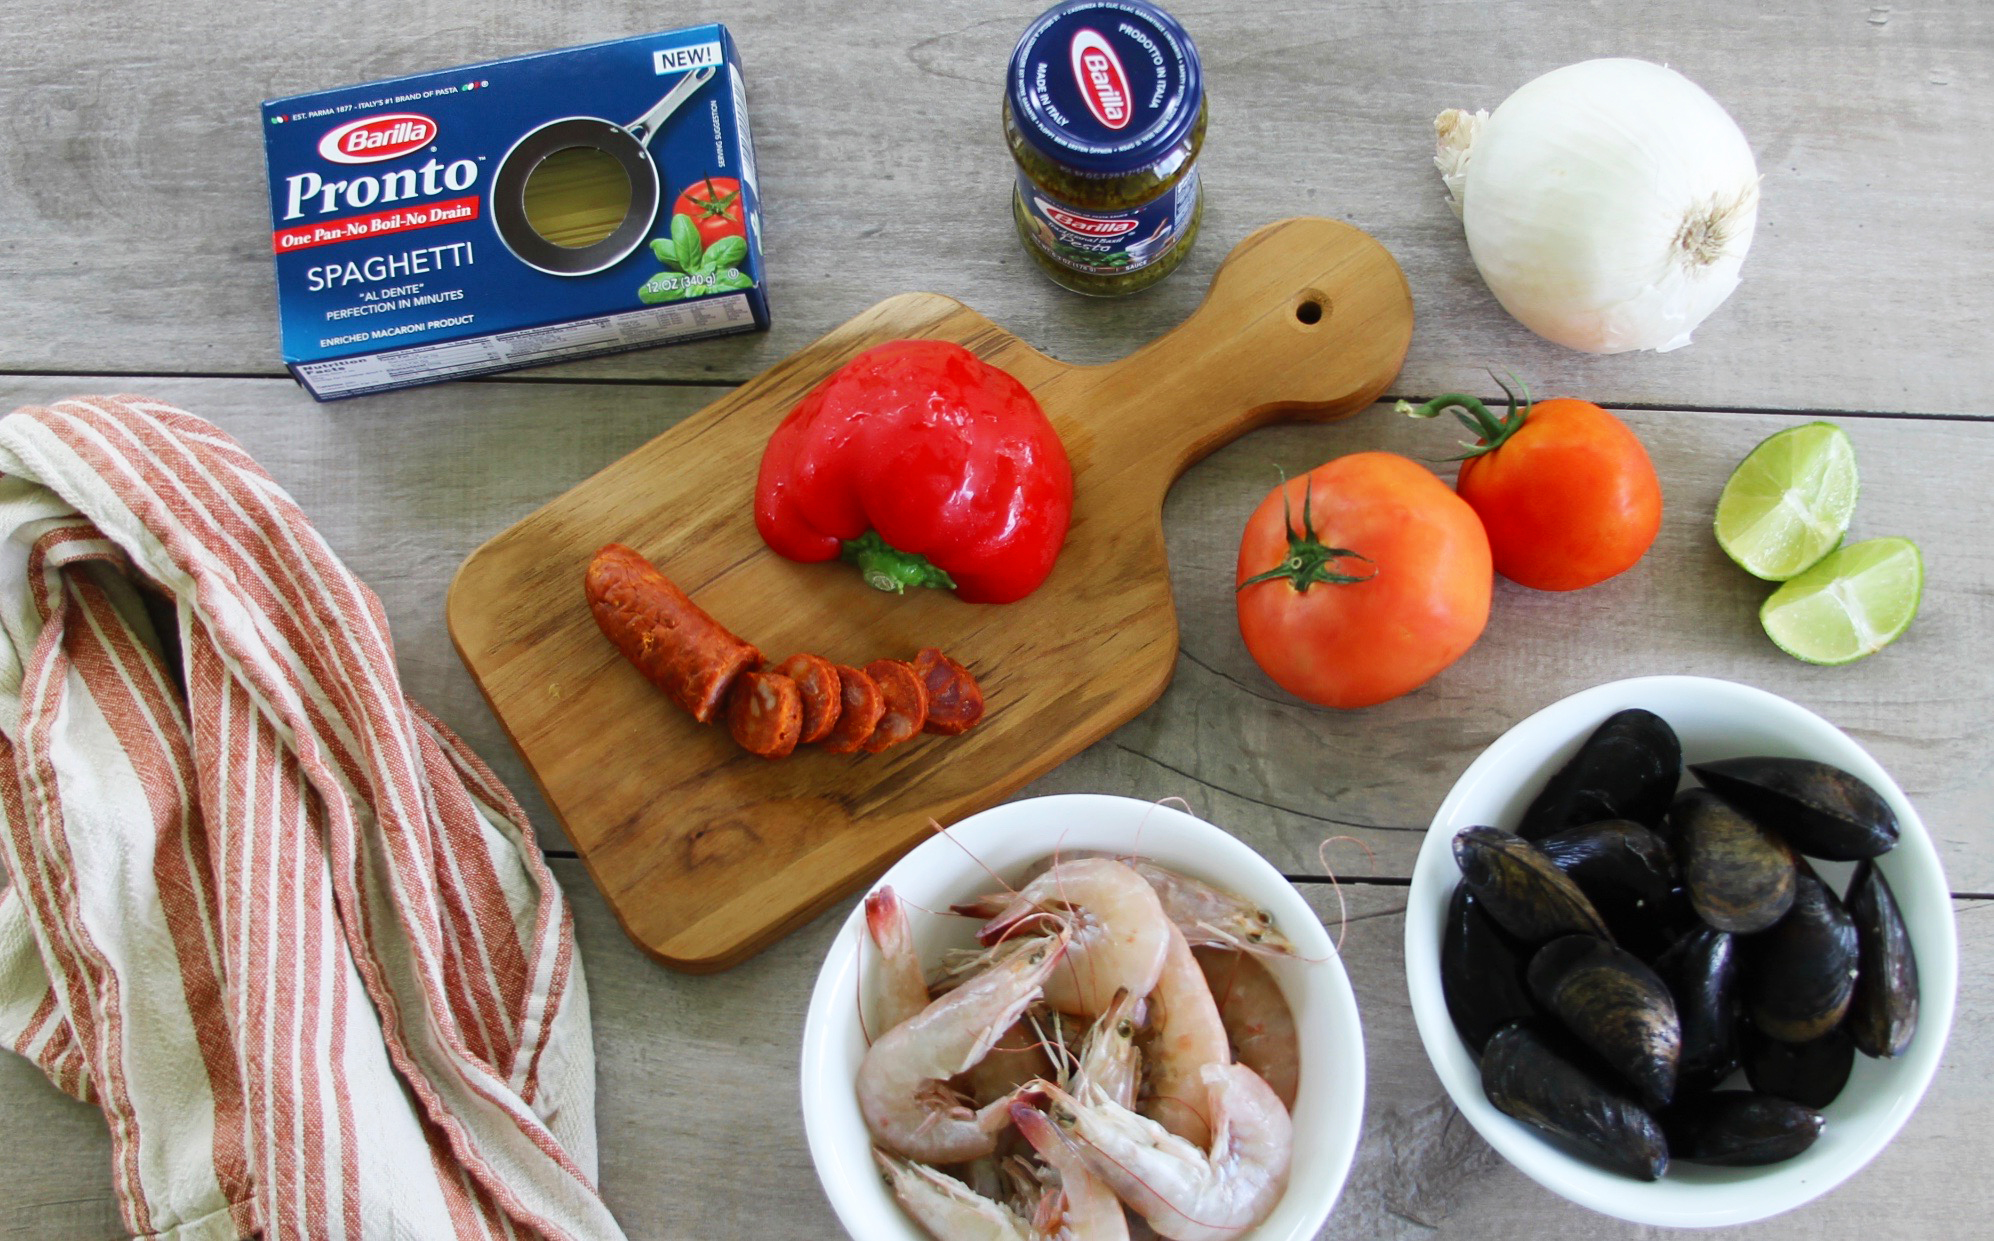 Ingredients for One-pan Spanish chorizo and seafood fideua recipe